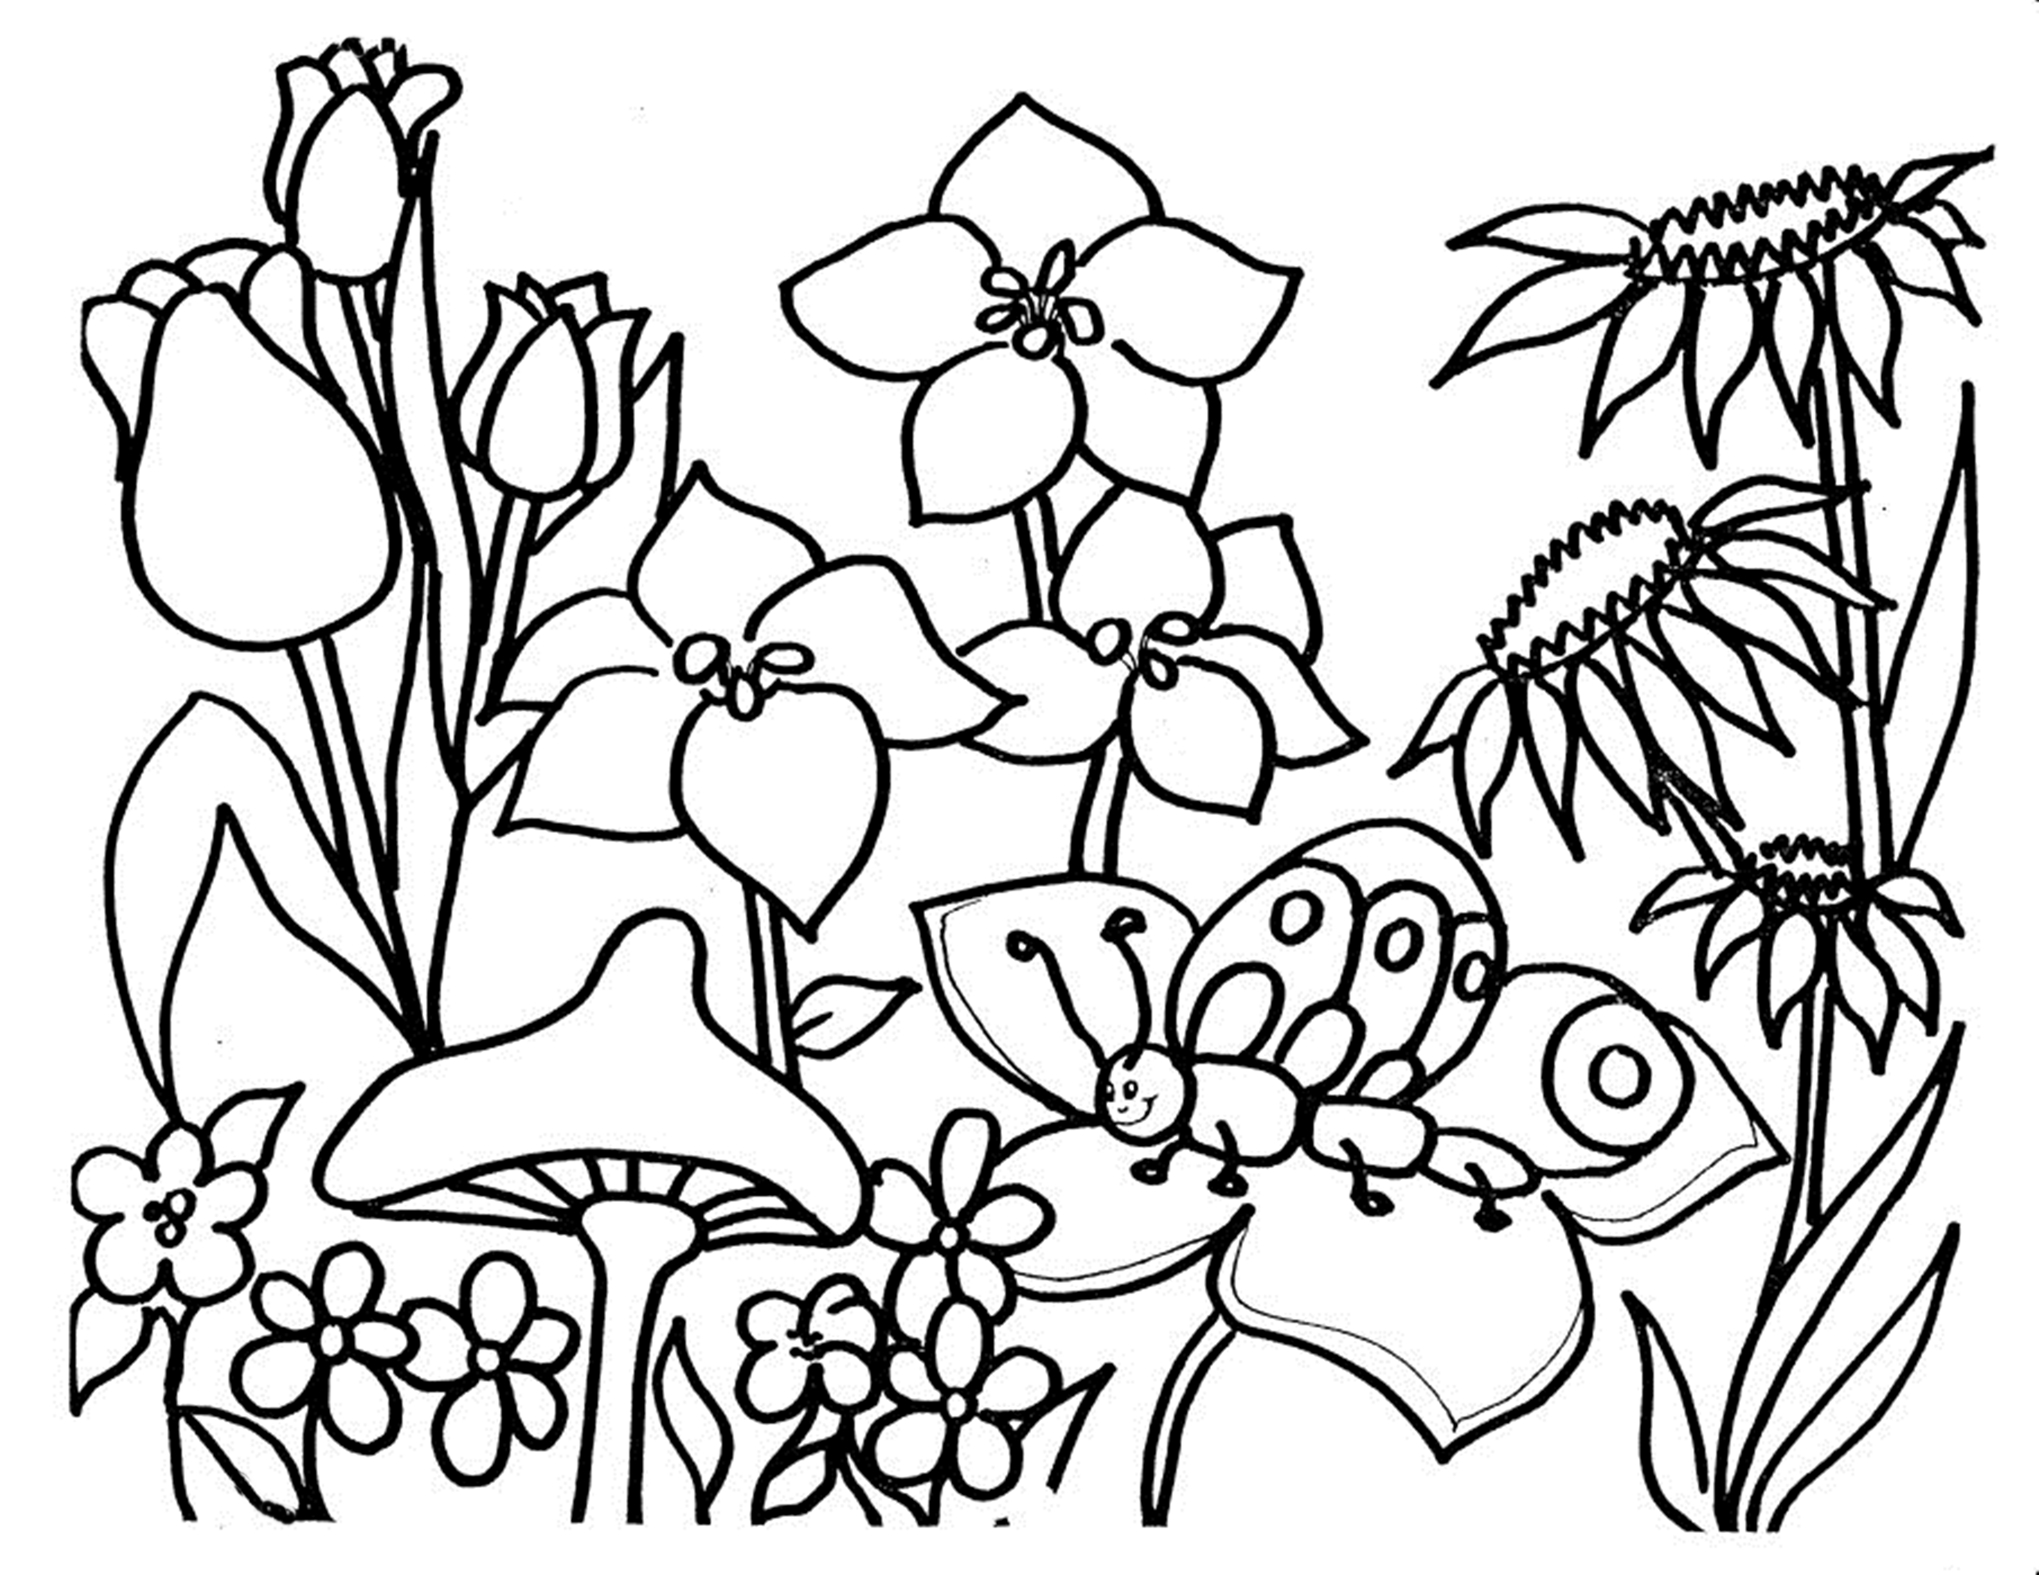 kids flower coloring pages free printable flower coloring pages for kids best flower coloring pages kids